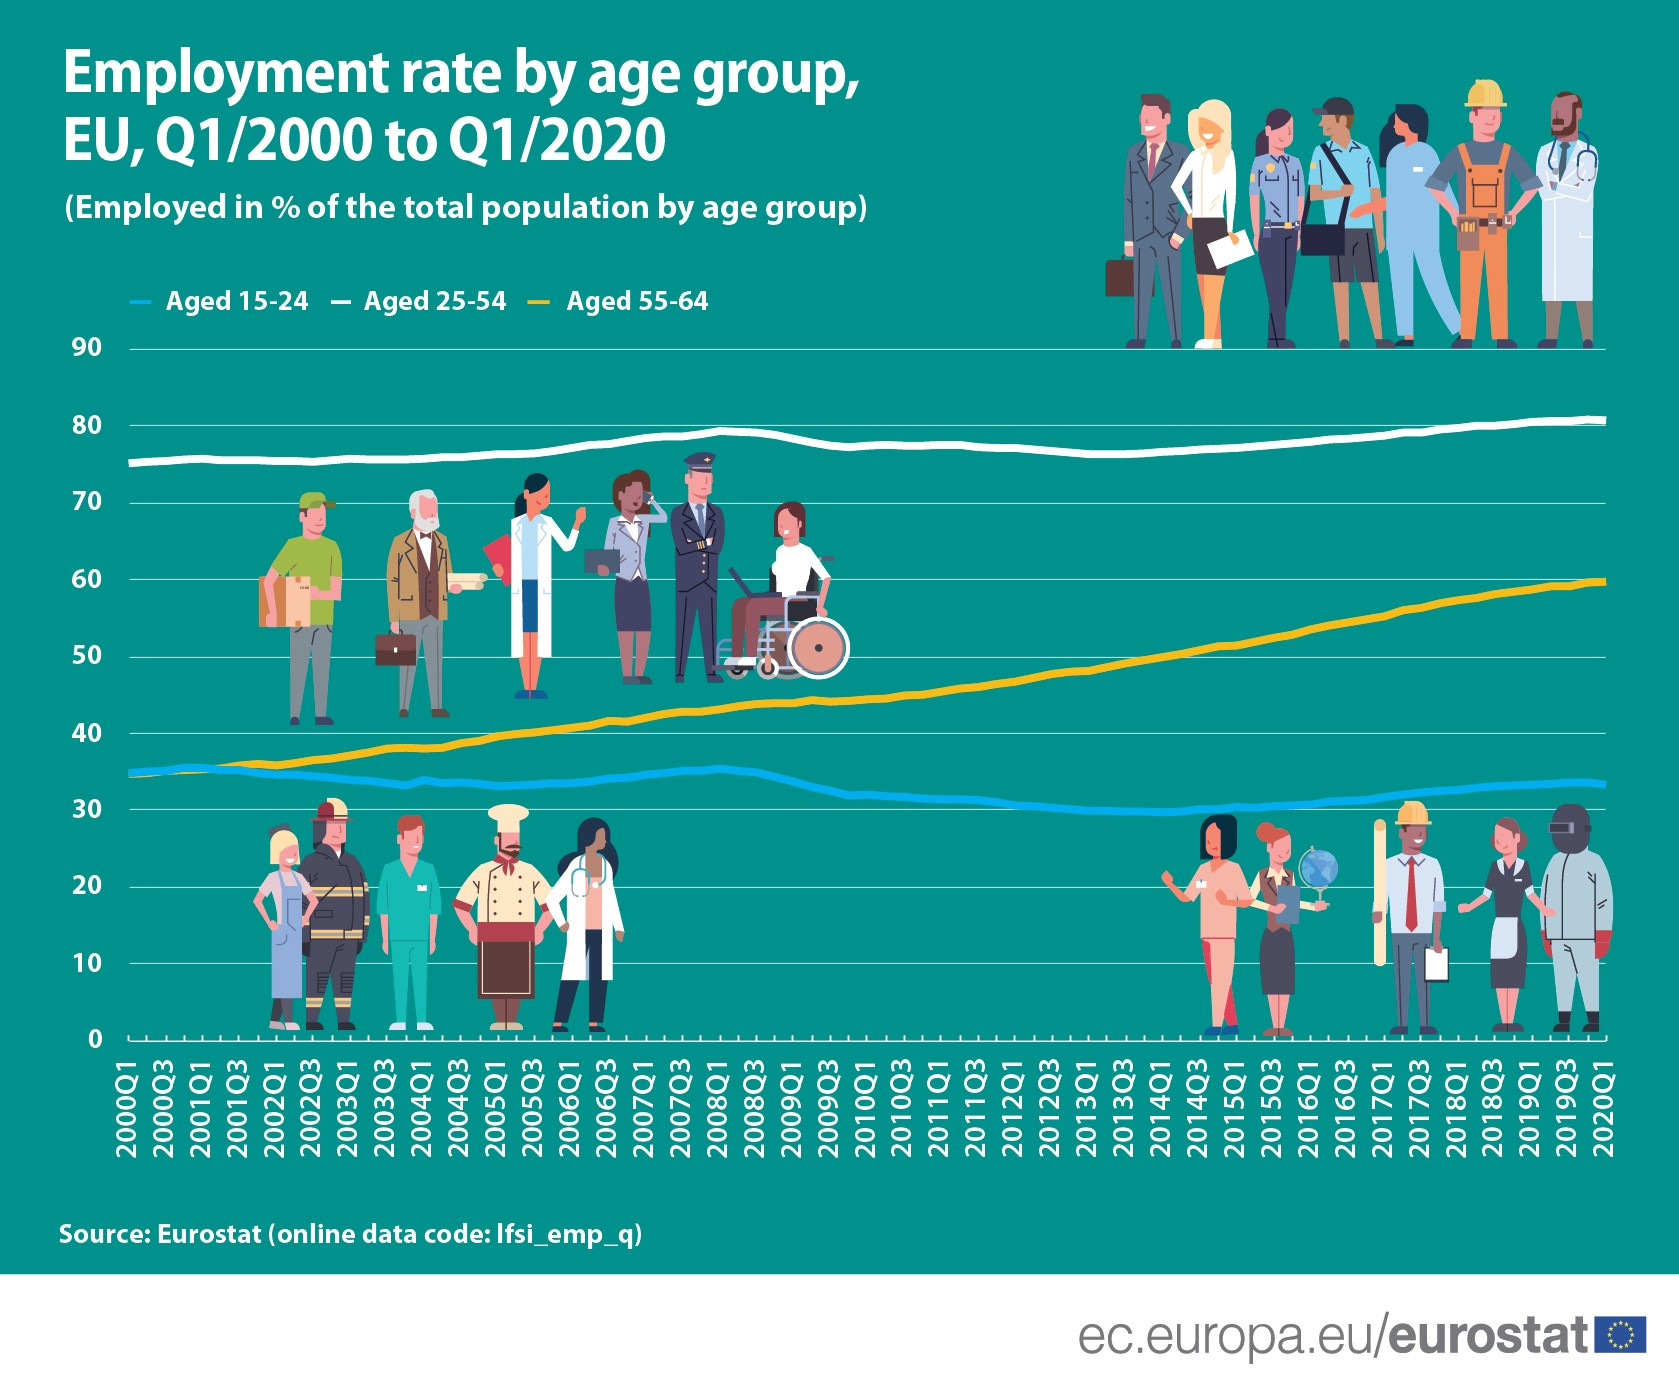 Employment rate by age group, Q1/2000 to Q1/2020